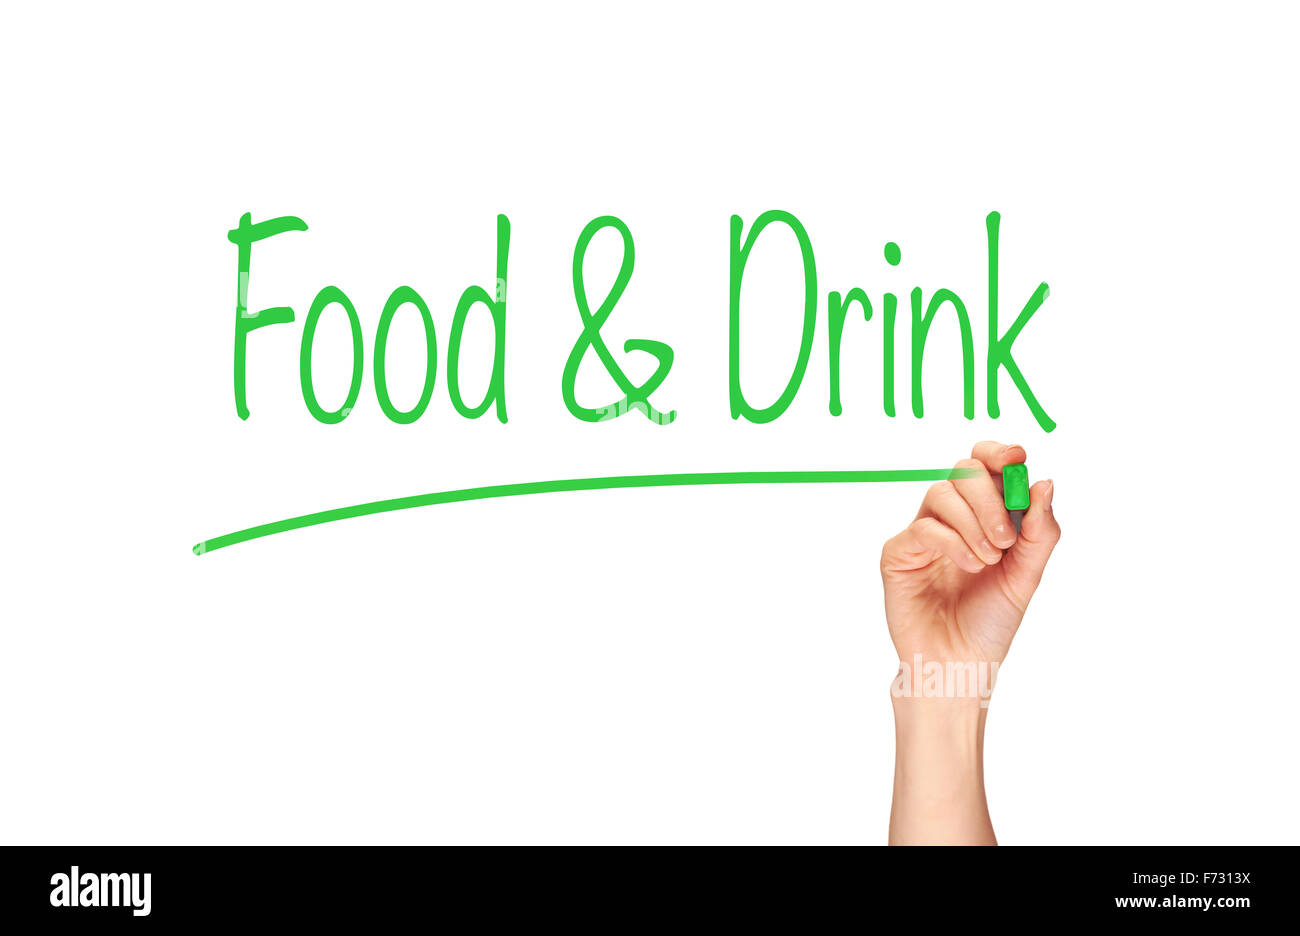 Food & Drink, Induction Training headlines concept. - Stock Image